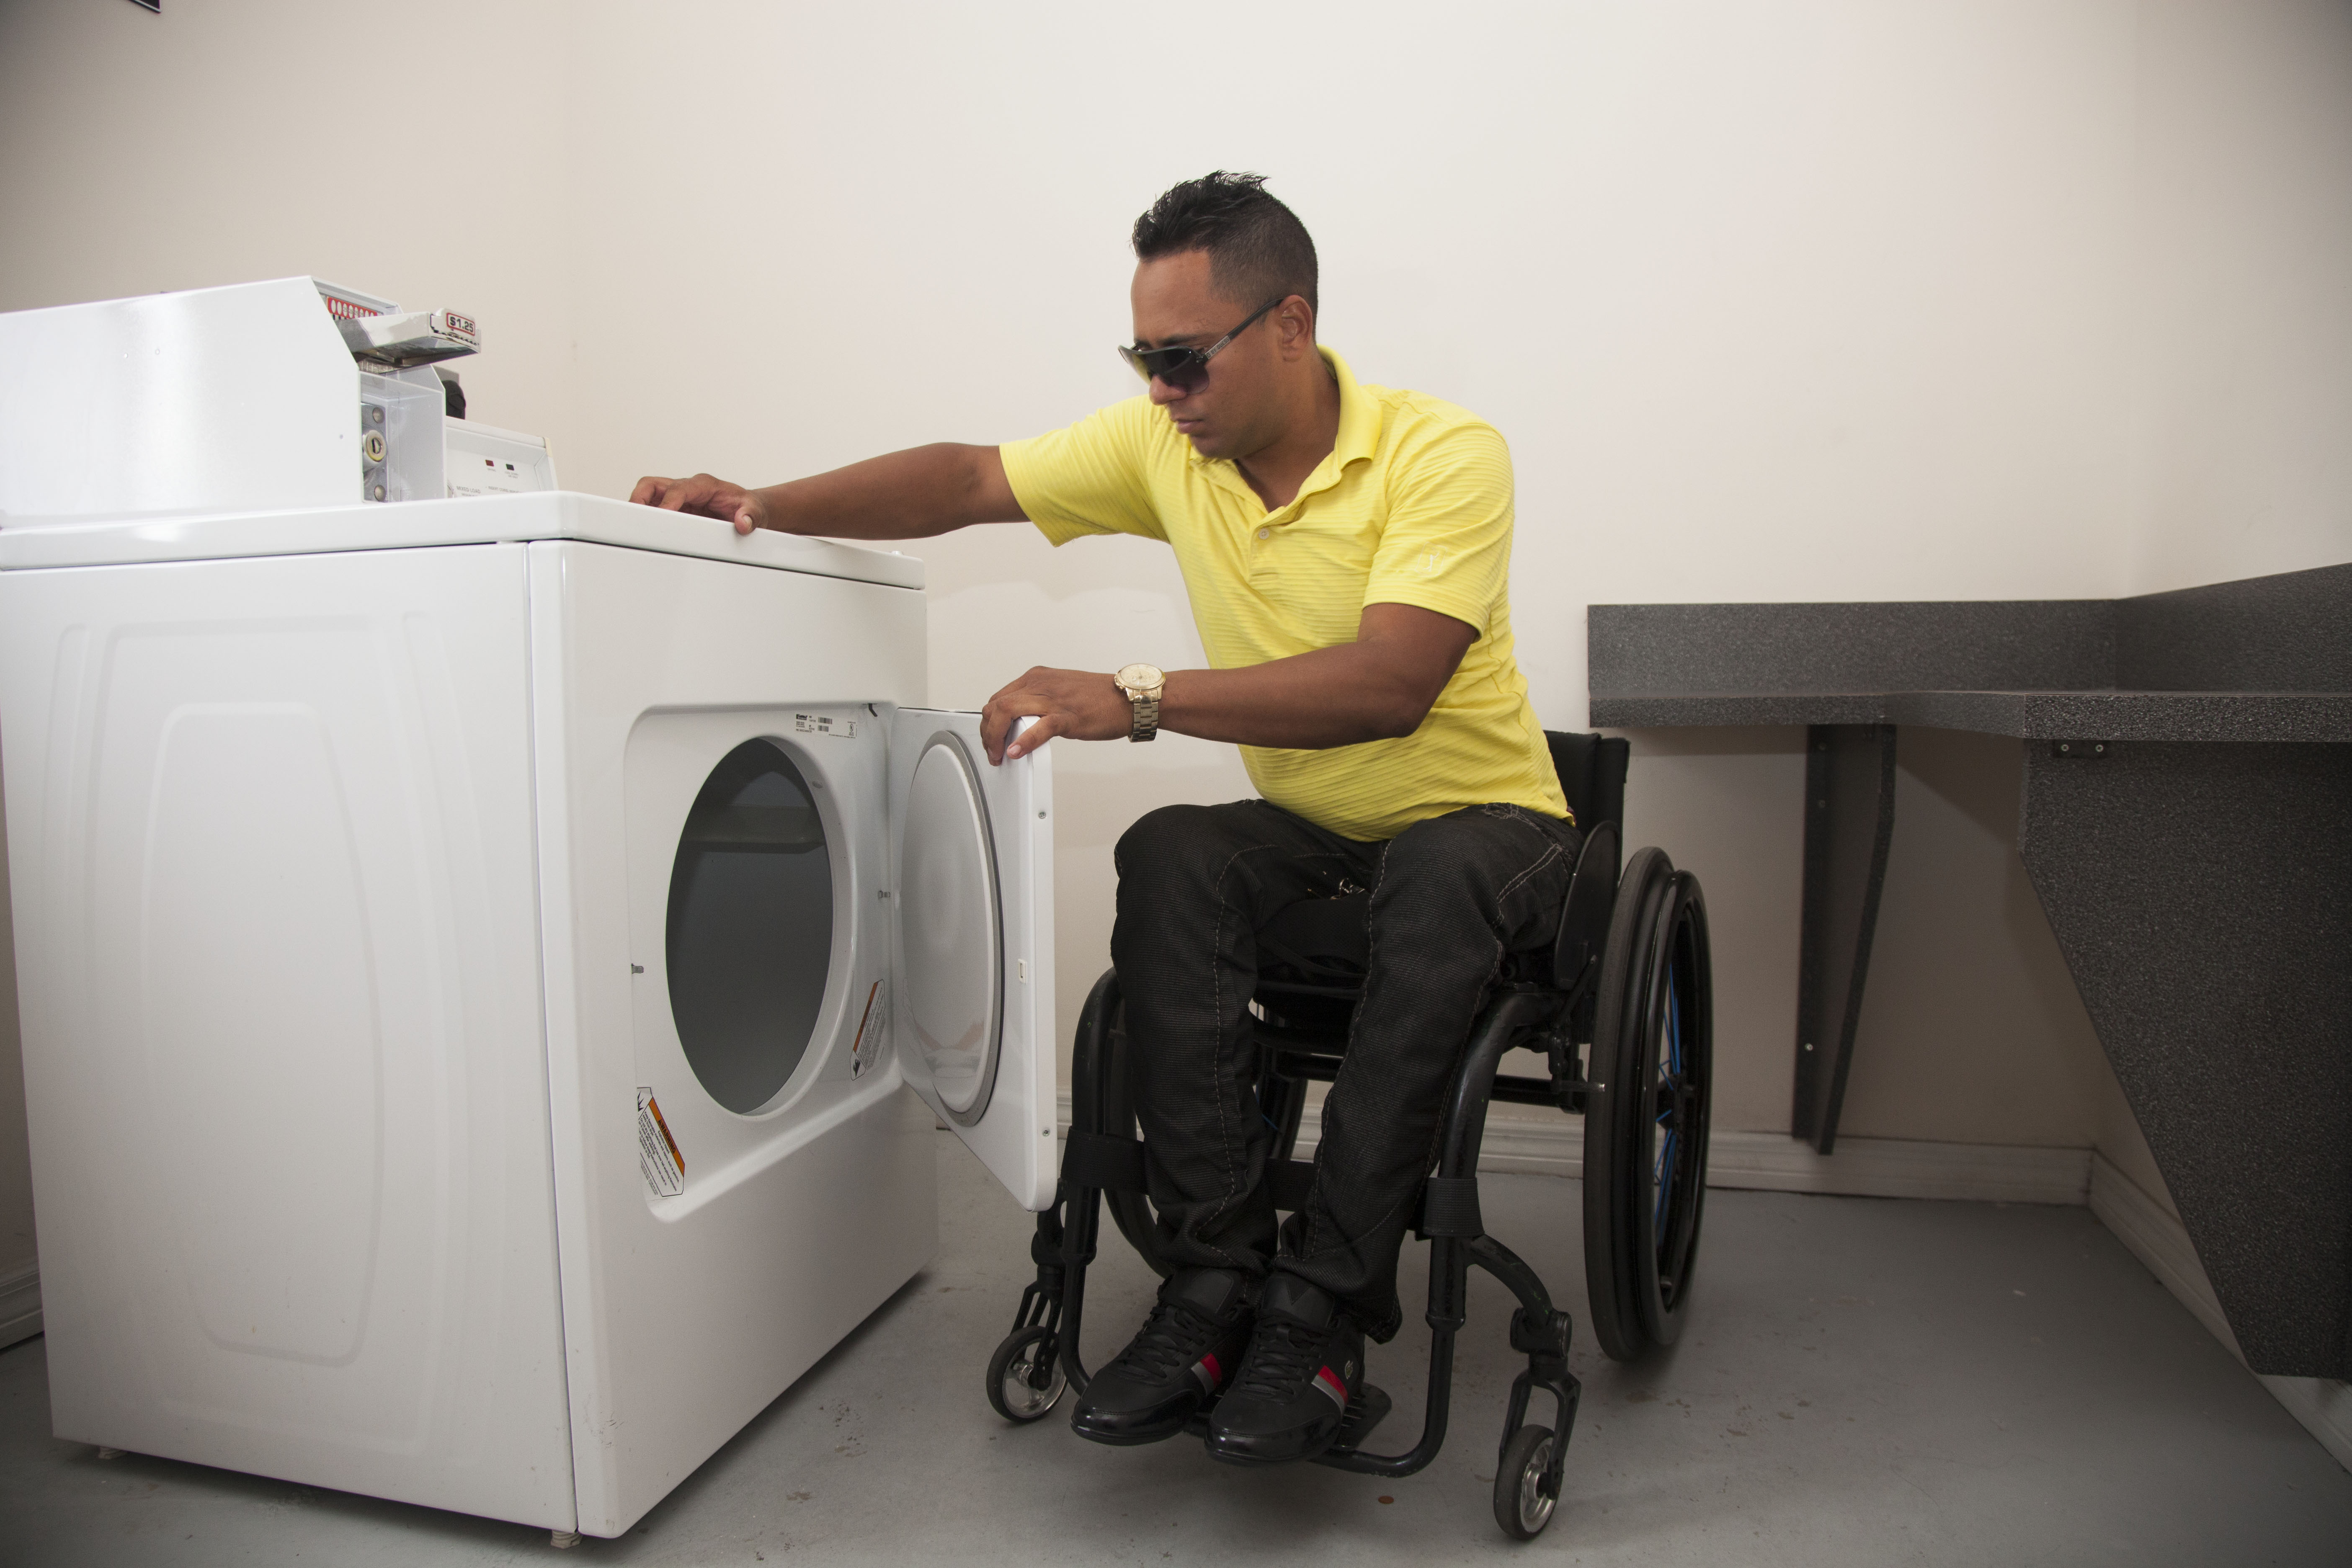 SCLAD Plaza Residents enjoy a fully accessible laundry unity